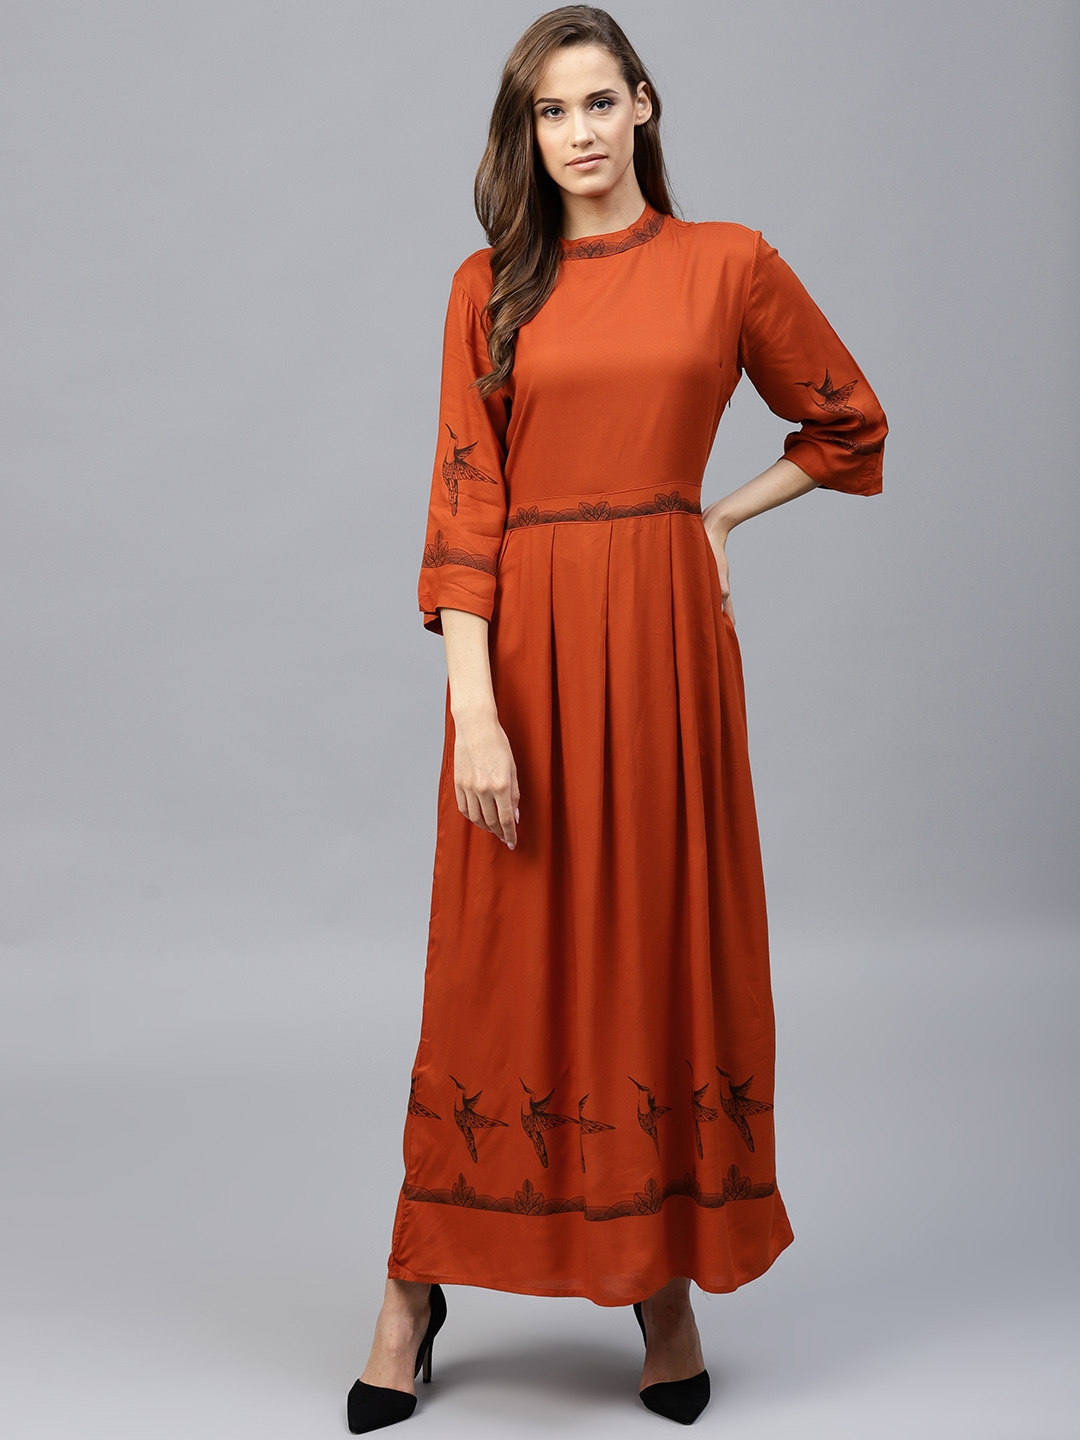 d9472668e60b Buy Tokyo Talkies Women Rust Orange Solid Maxi Dress - Dresses for ...